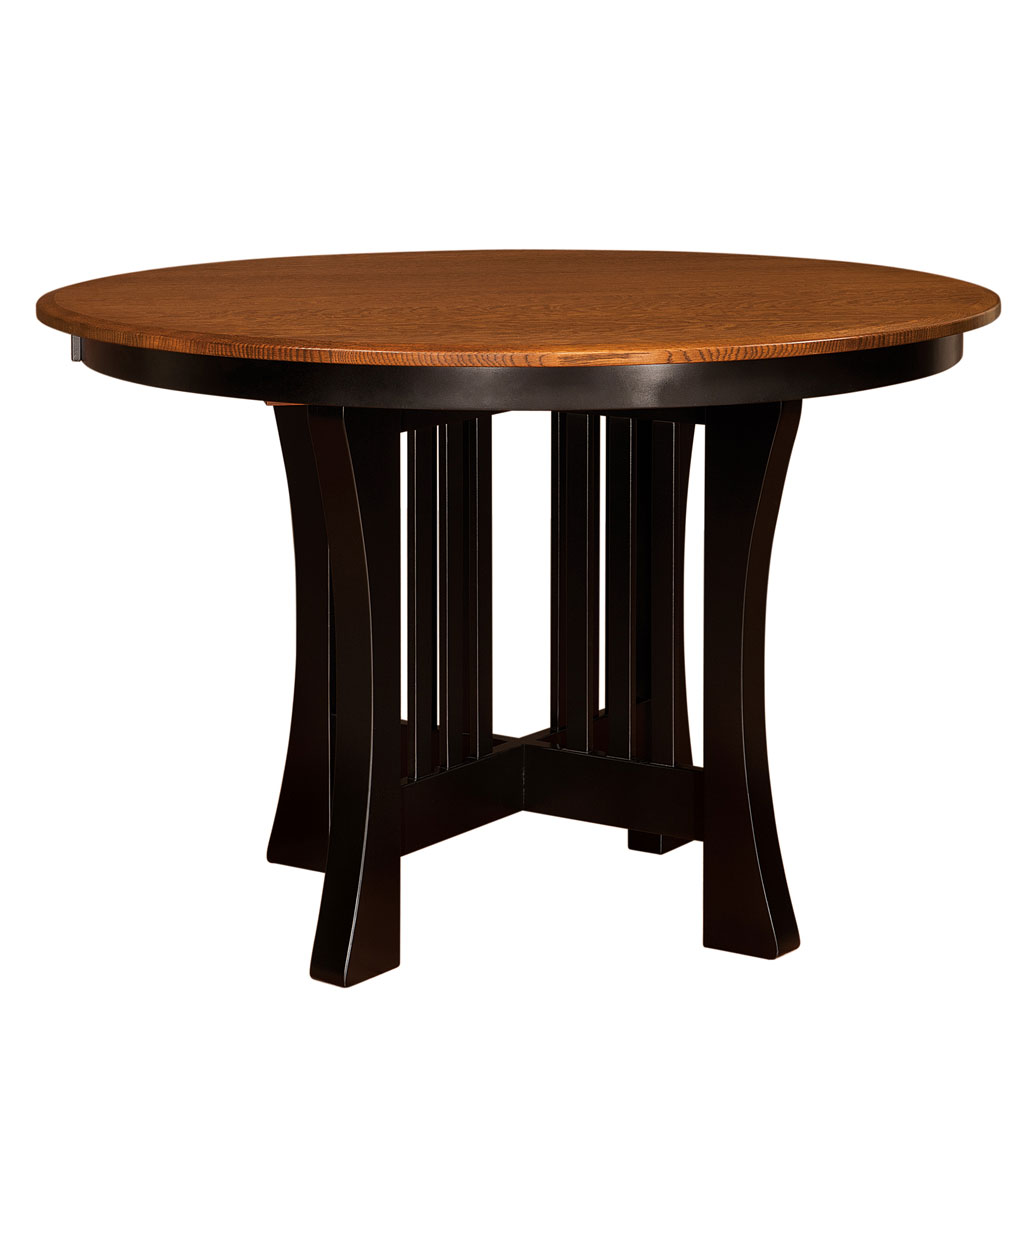 Arts and crafts dining table amish direct furniture arts and crafts amish table counter height dzzzfo